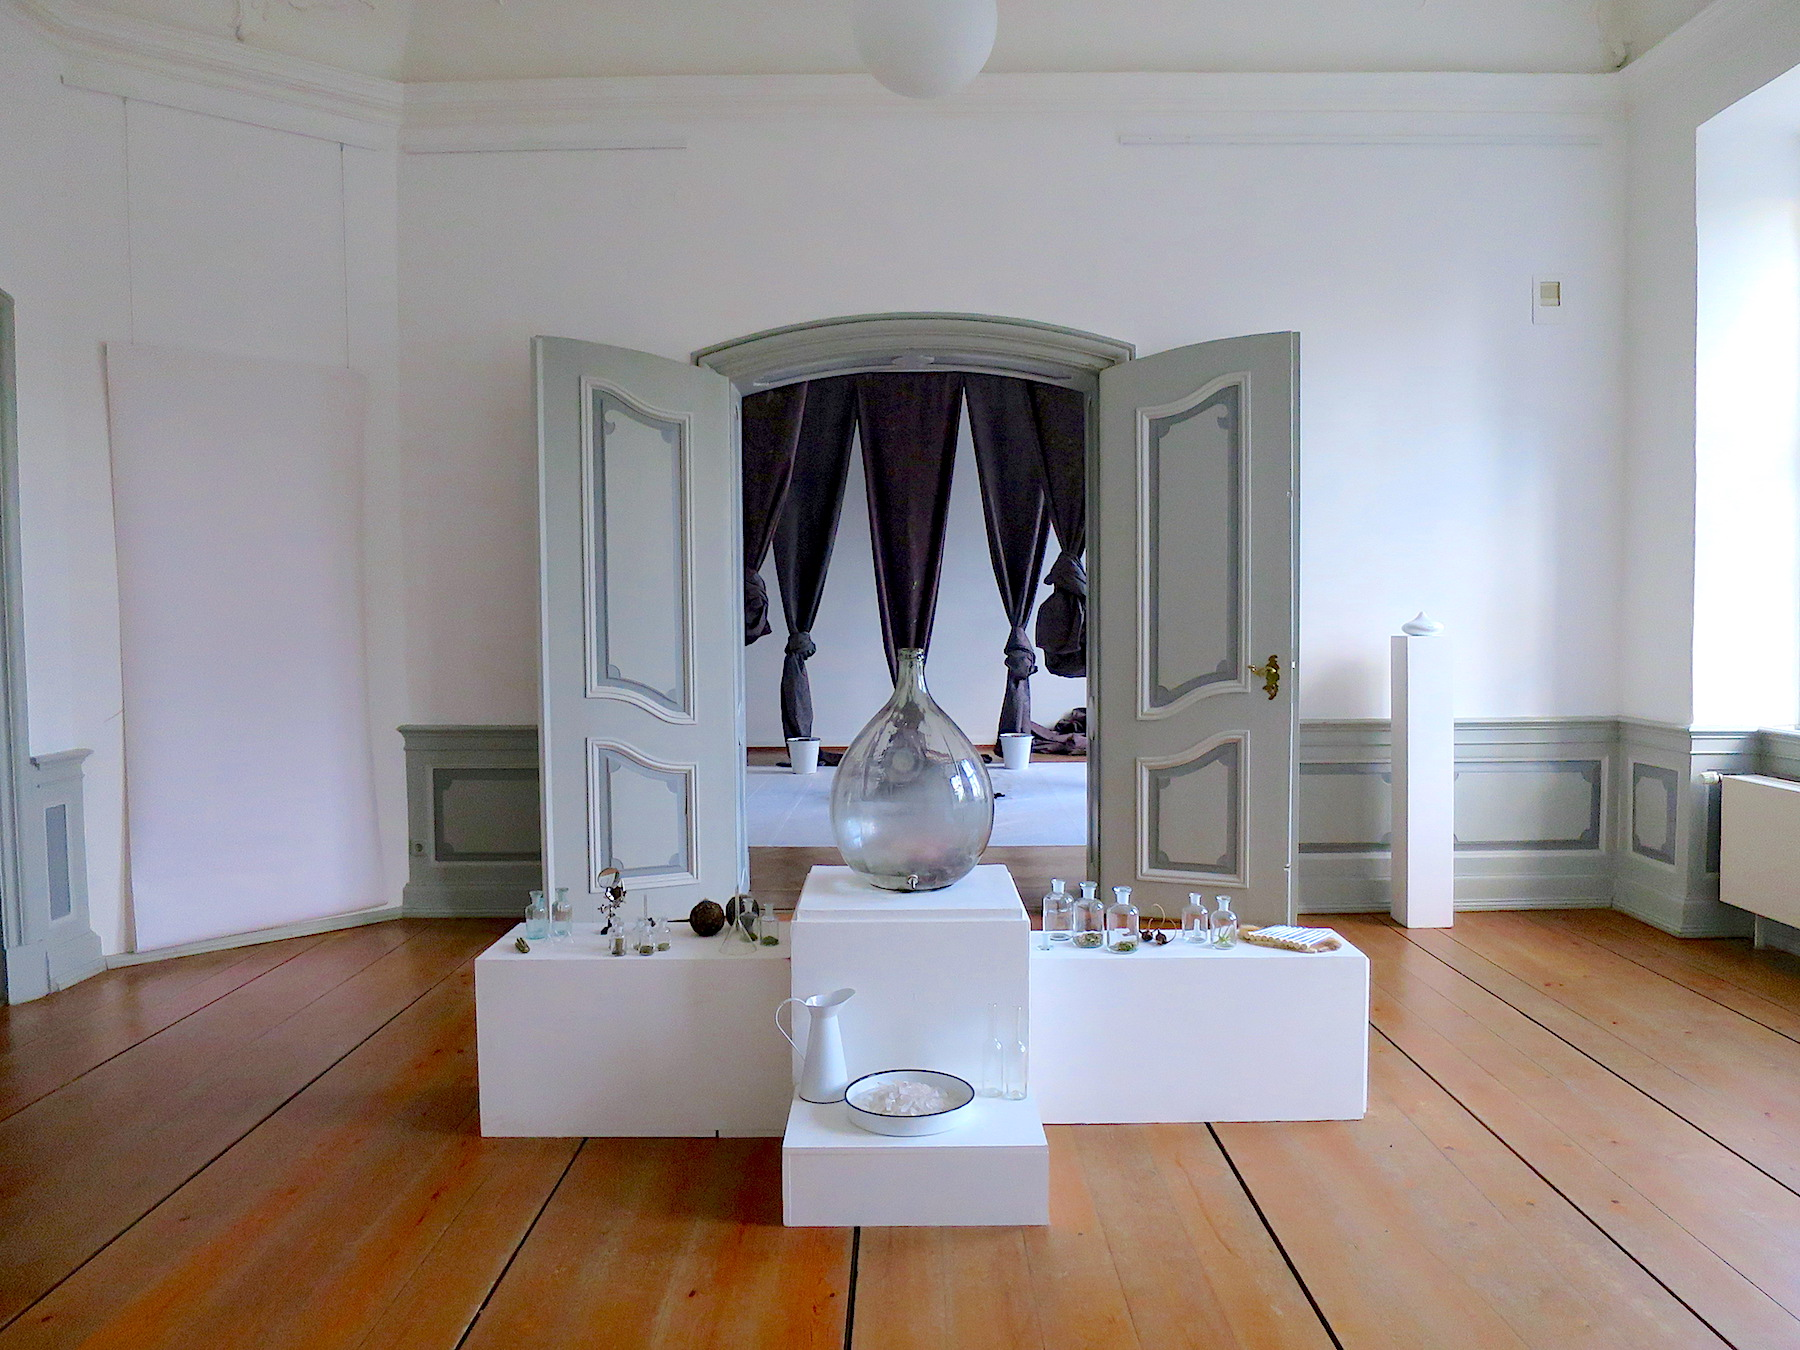 Altar of Imagination, Voices of Stones  Sculptural Installation and Olfactory Art  2014, Schloss Plüschow, Germany